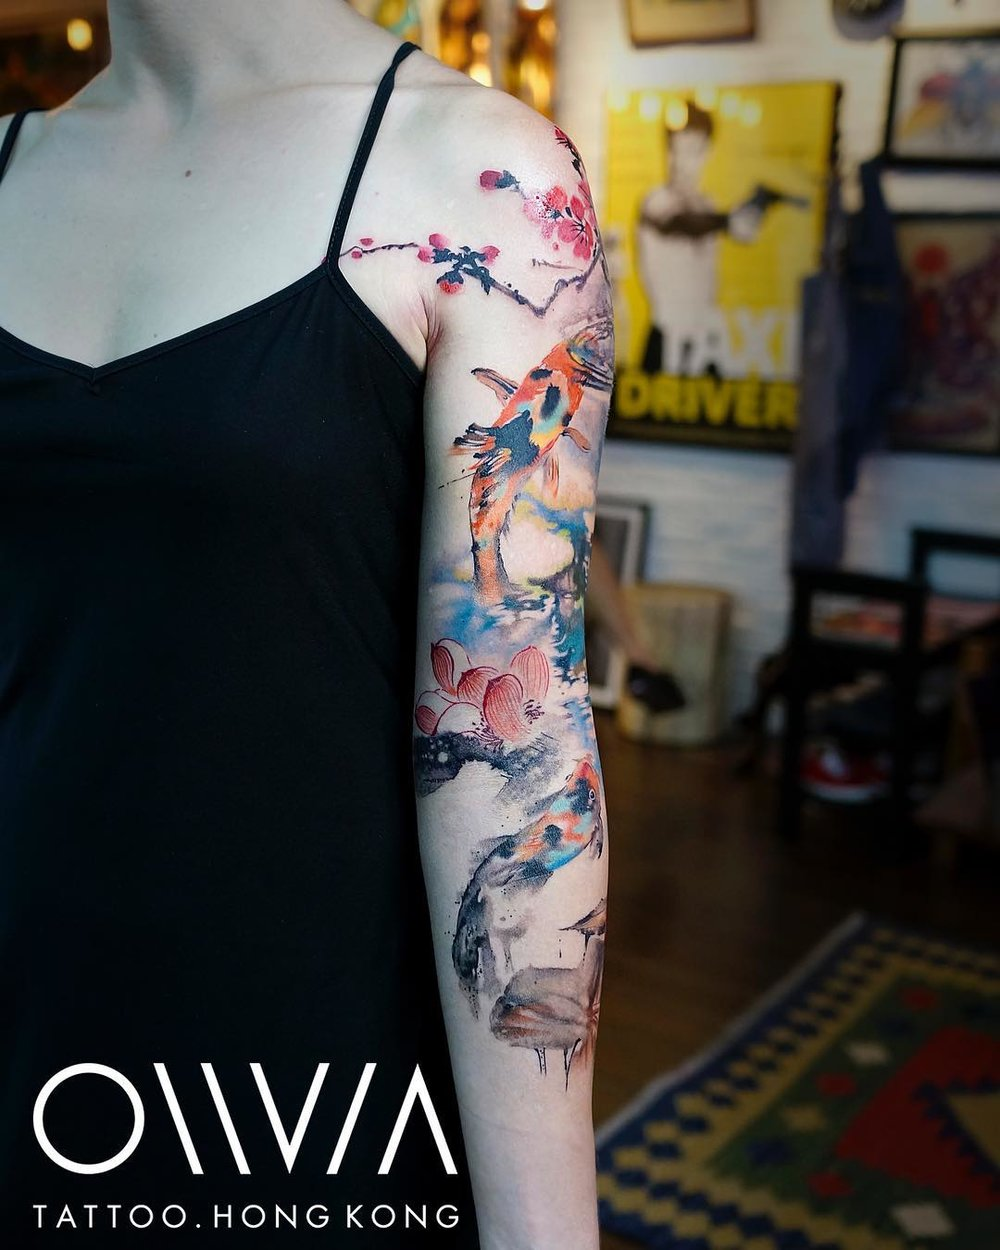 2018-fridays-tattoo-hong-kong-olivia-koi-sleeve-1.jpg